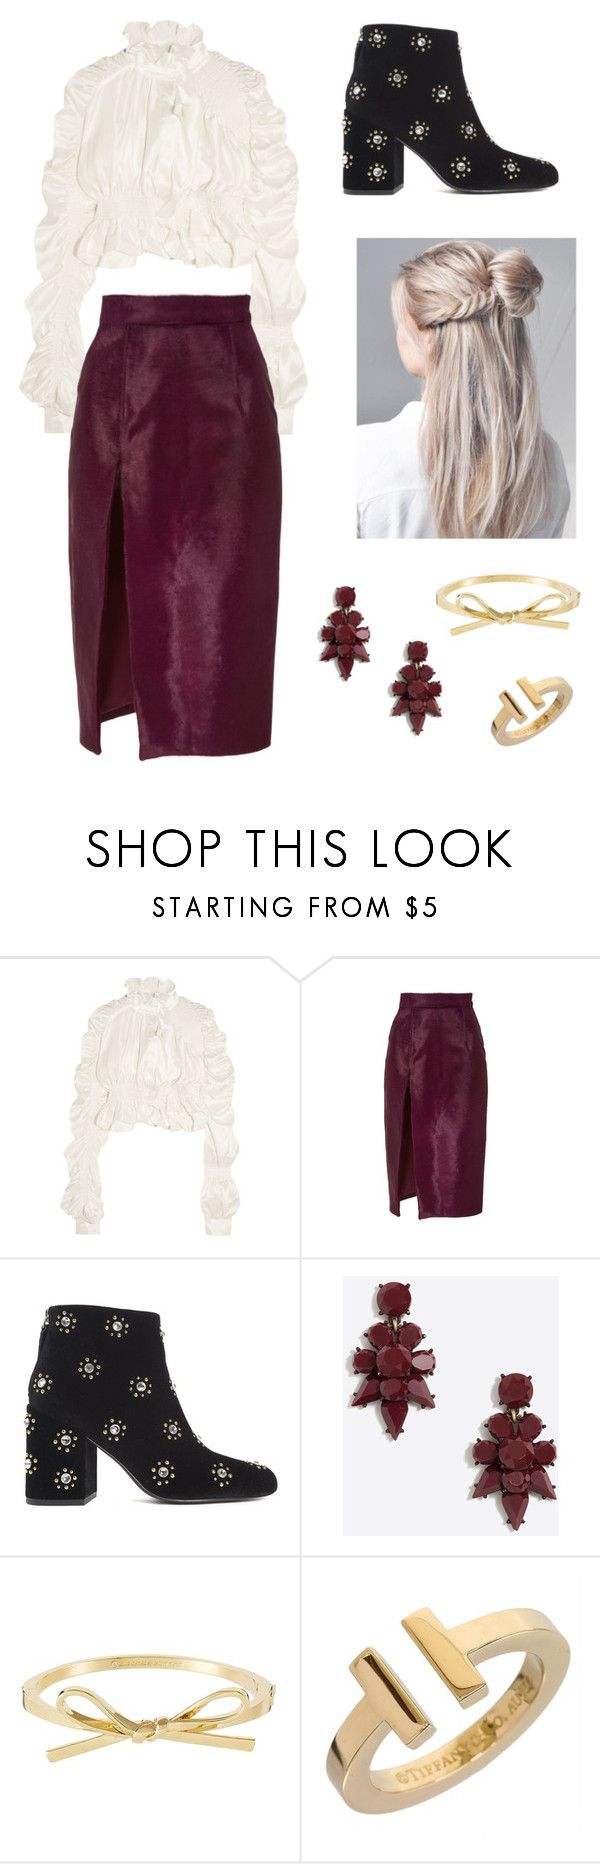 """""""Untitled #3412"""" by california-made ❤ liked on Polyvore featuring Preen, Brandon Maxwell, Senso and Tiffany & Co."""